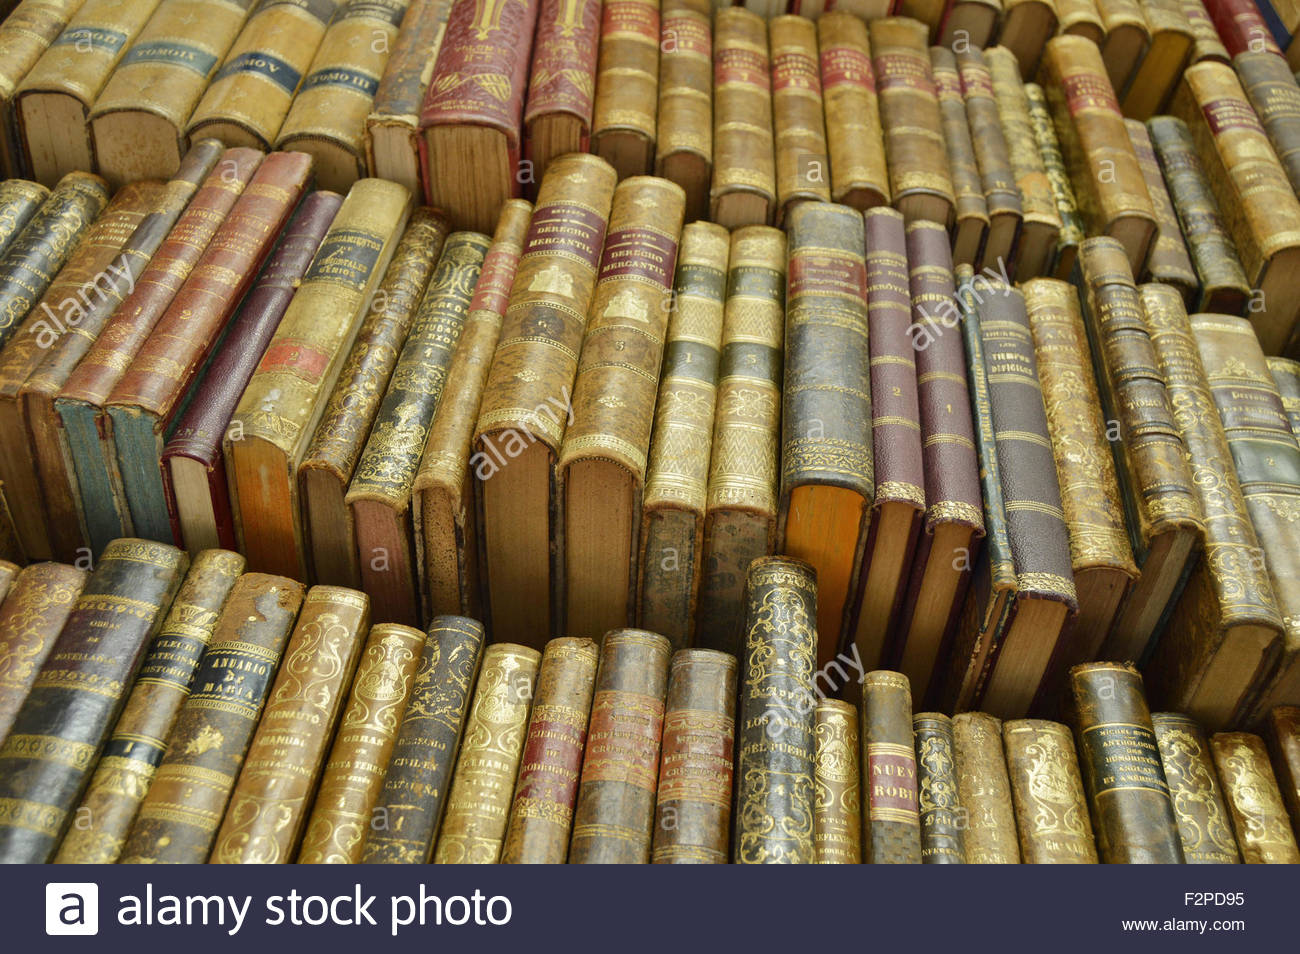 Old secondhand books displayed at bookshop in Barcelona Spain Europe. Stock Photo